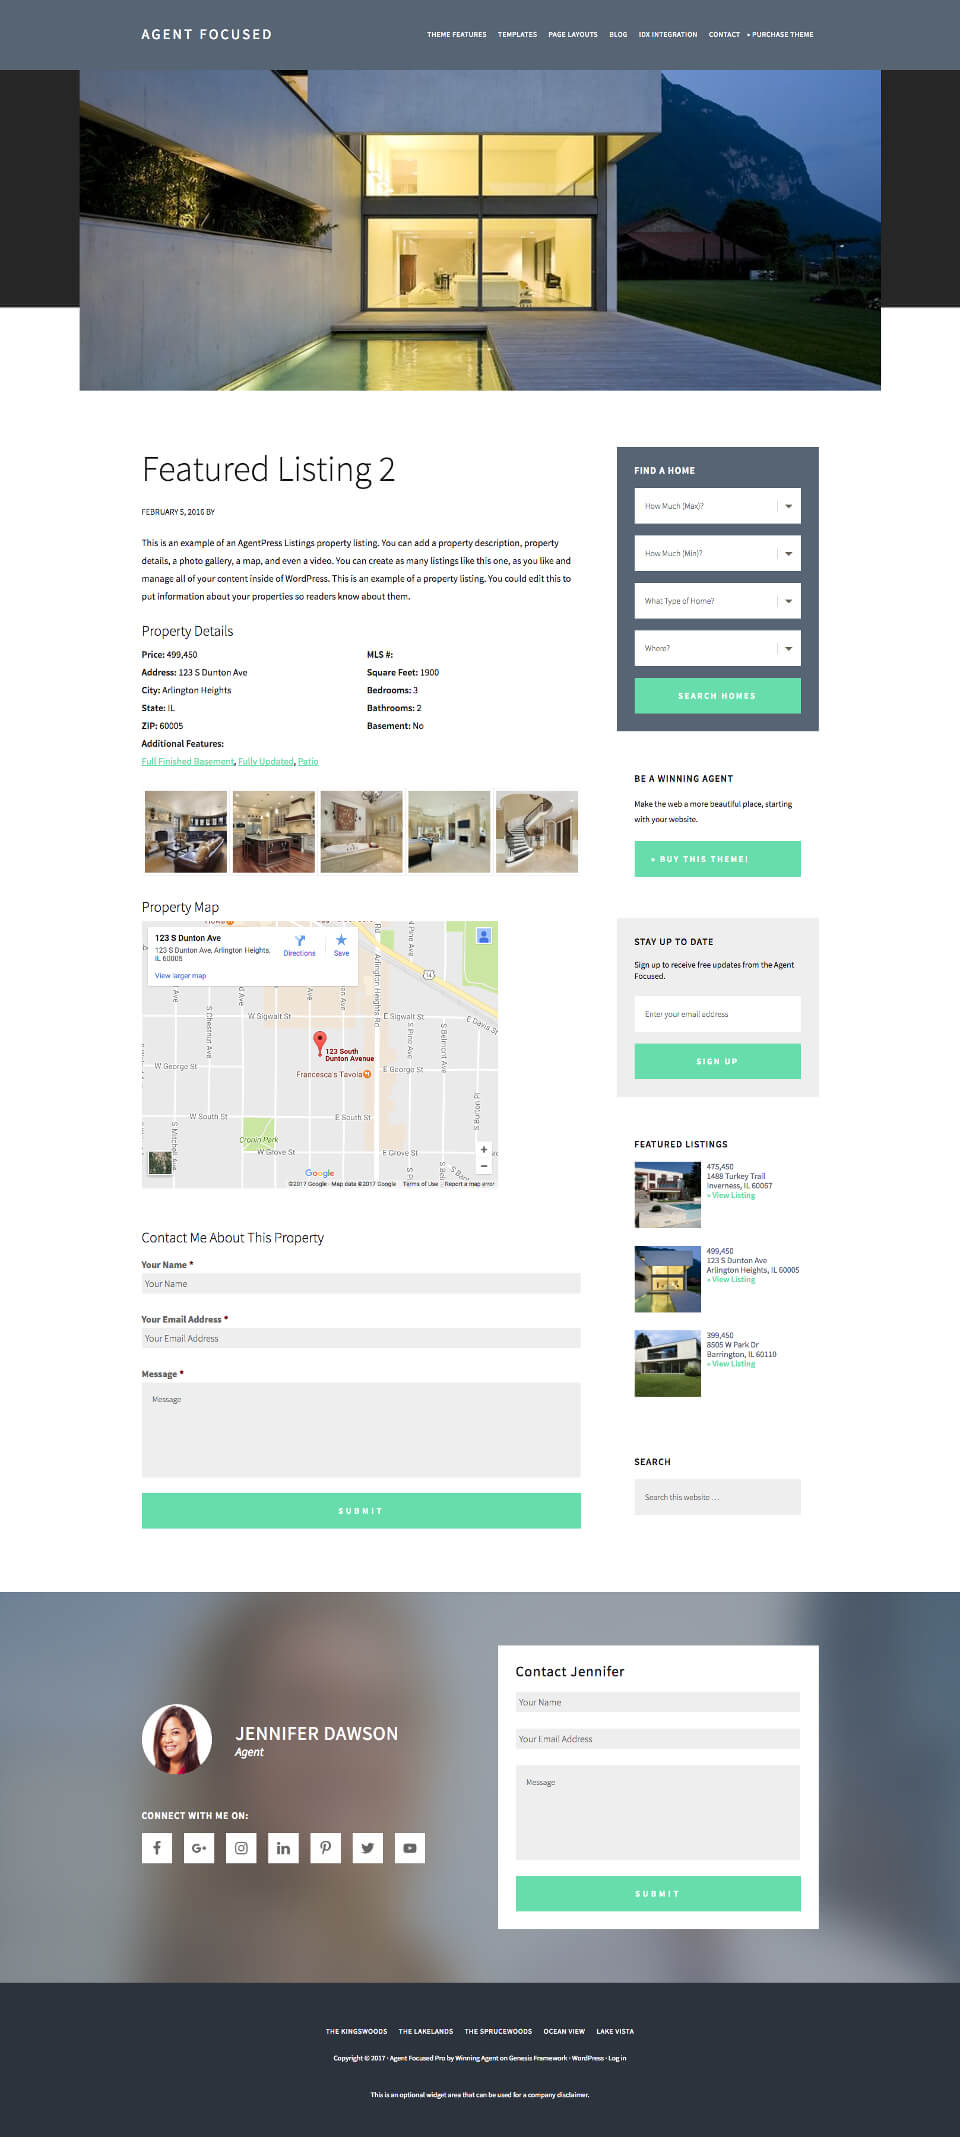 custom studiopress theme for real estate listings agent focused theme